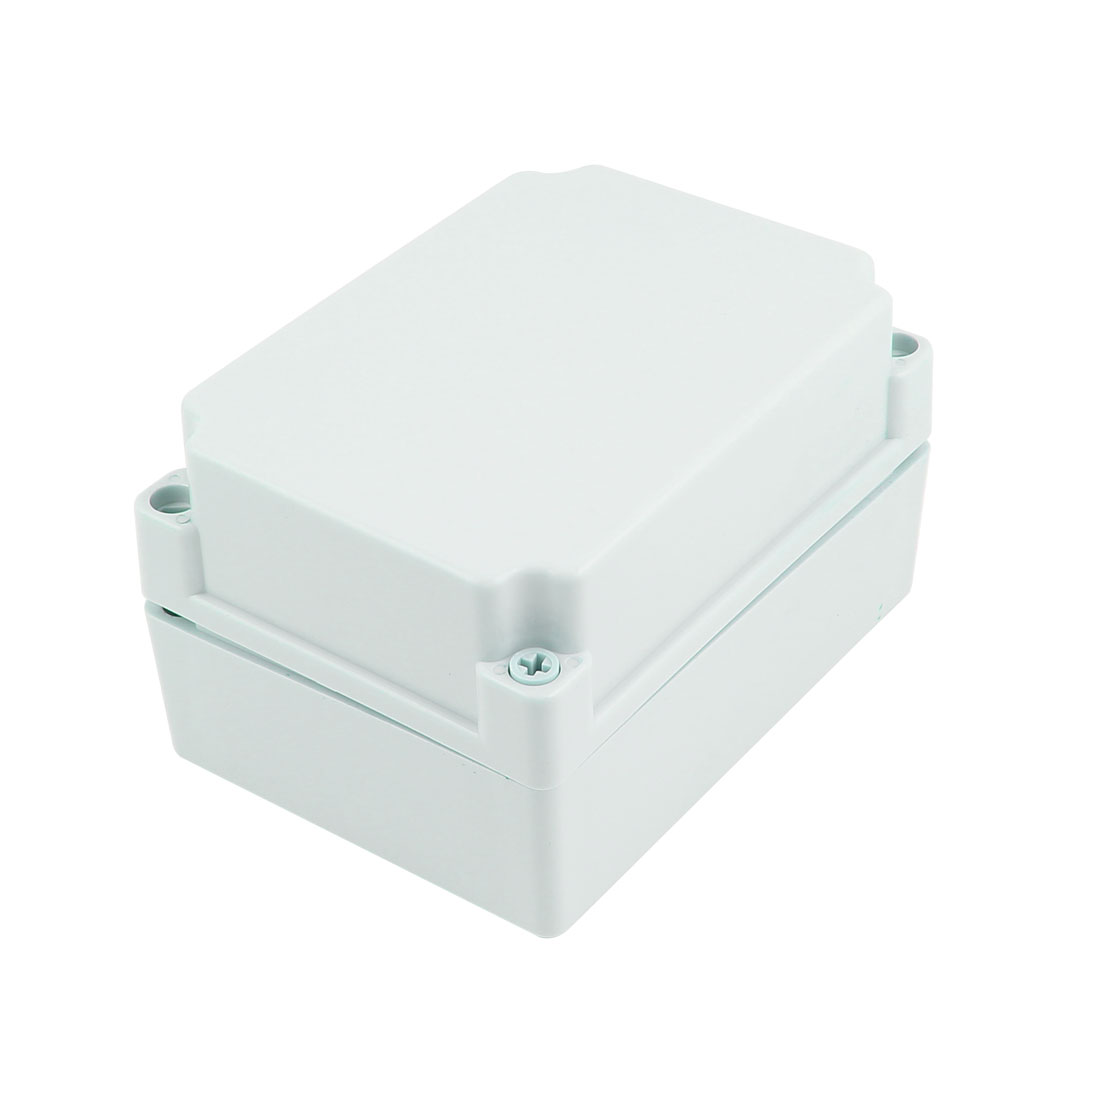 Dustproof IP65 Junction Box DIY Terminal Connection Enclosure Adaptable 167mm x117mm x 92mm